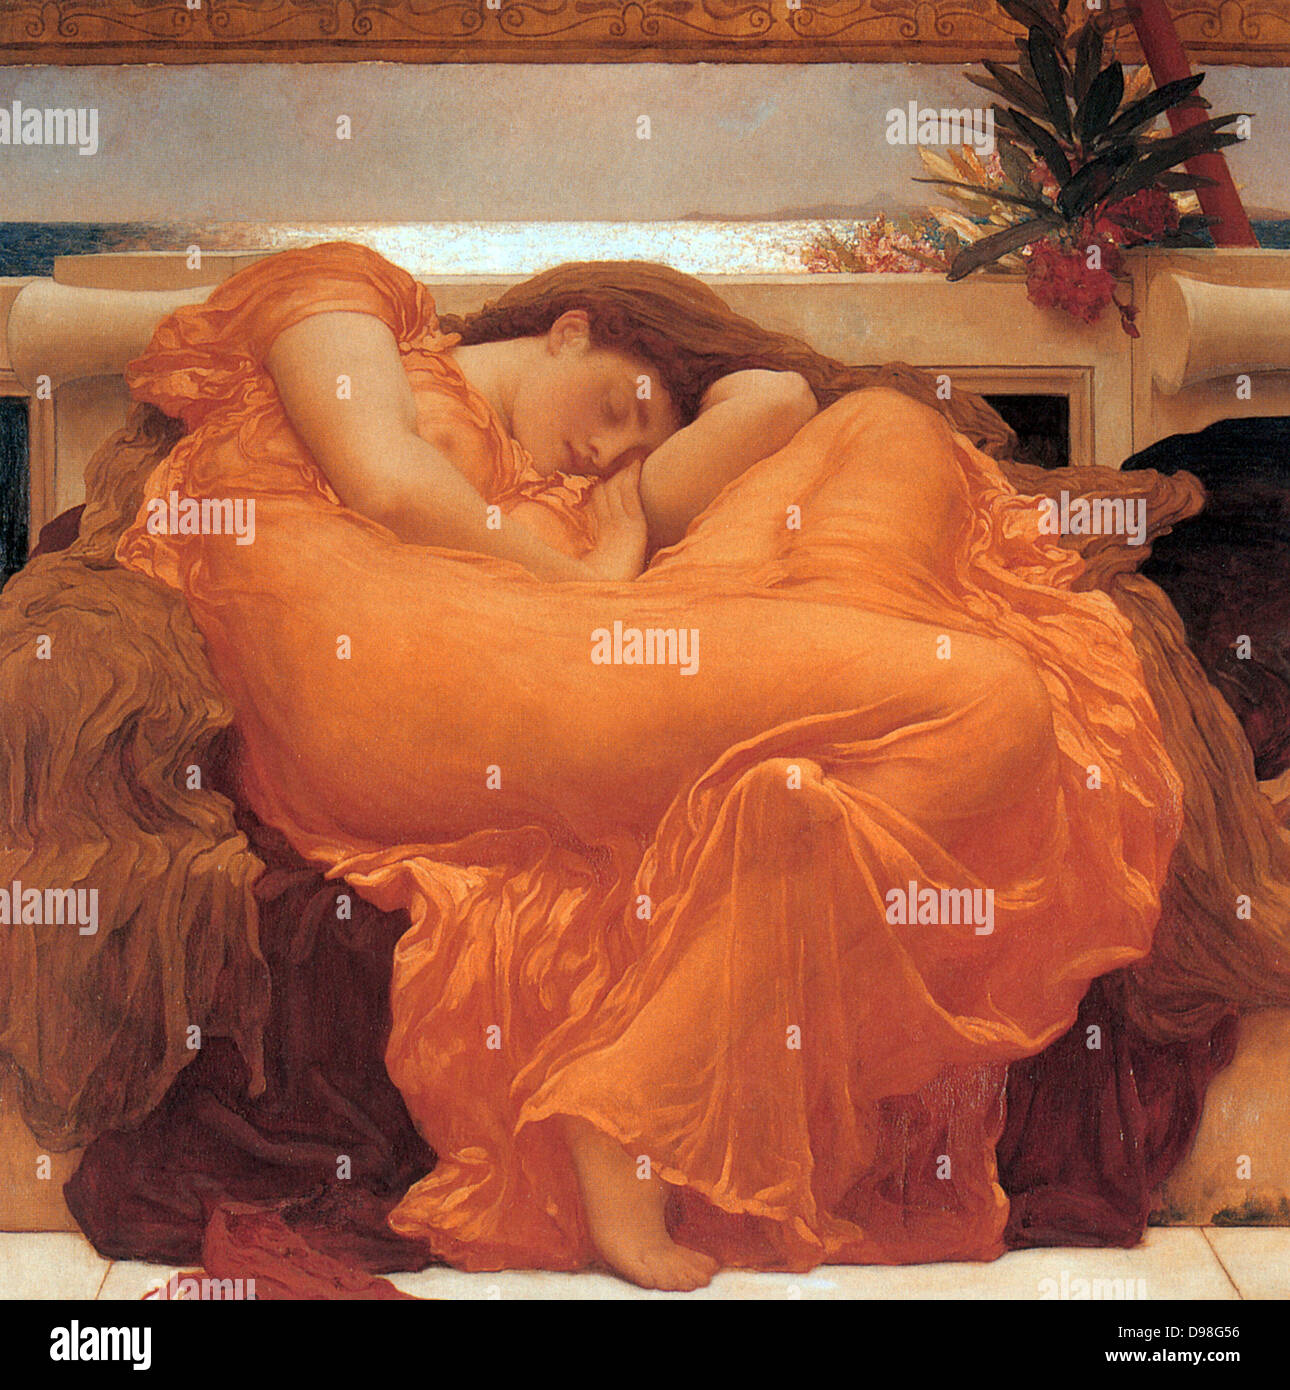 Frederic Leighton 1830-1896 Flaming June 1895 - Stock Image